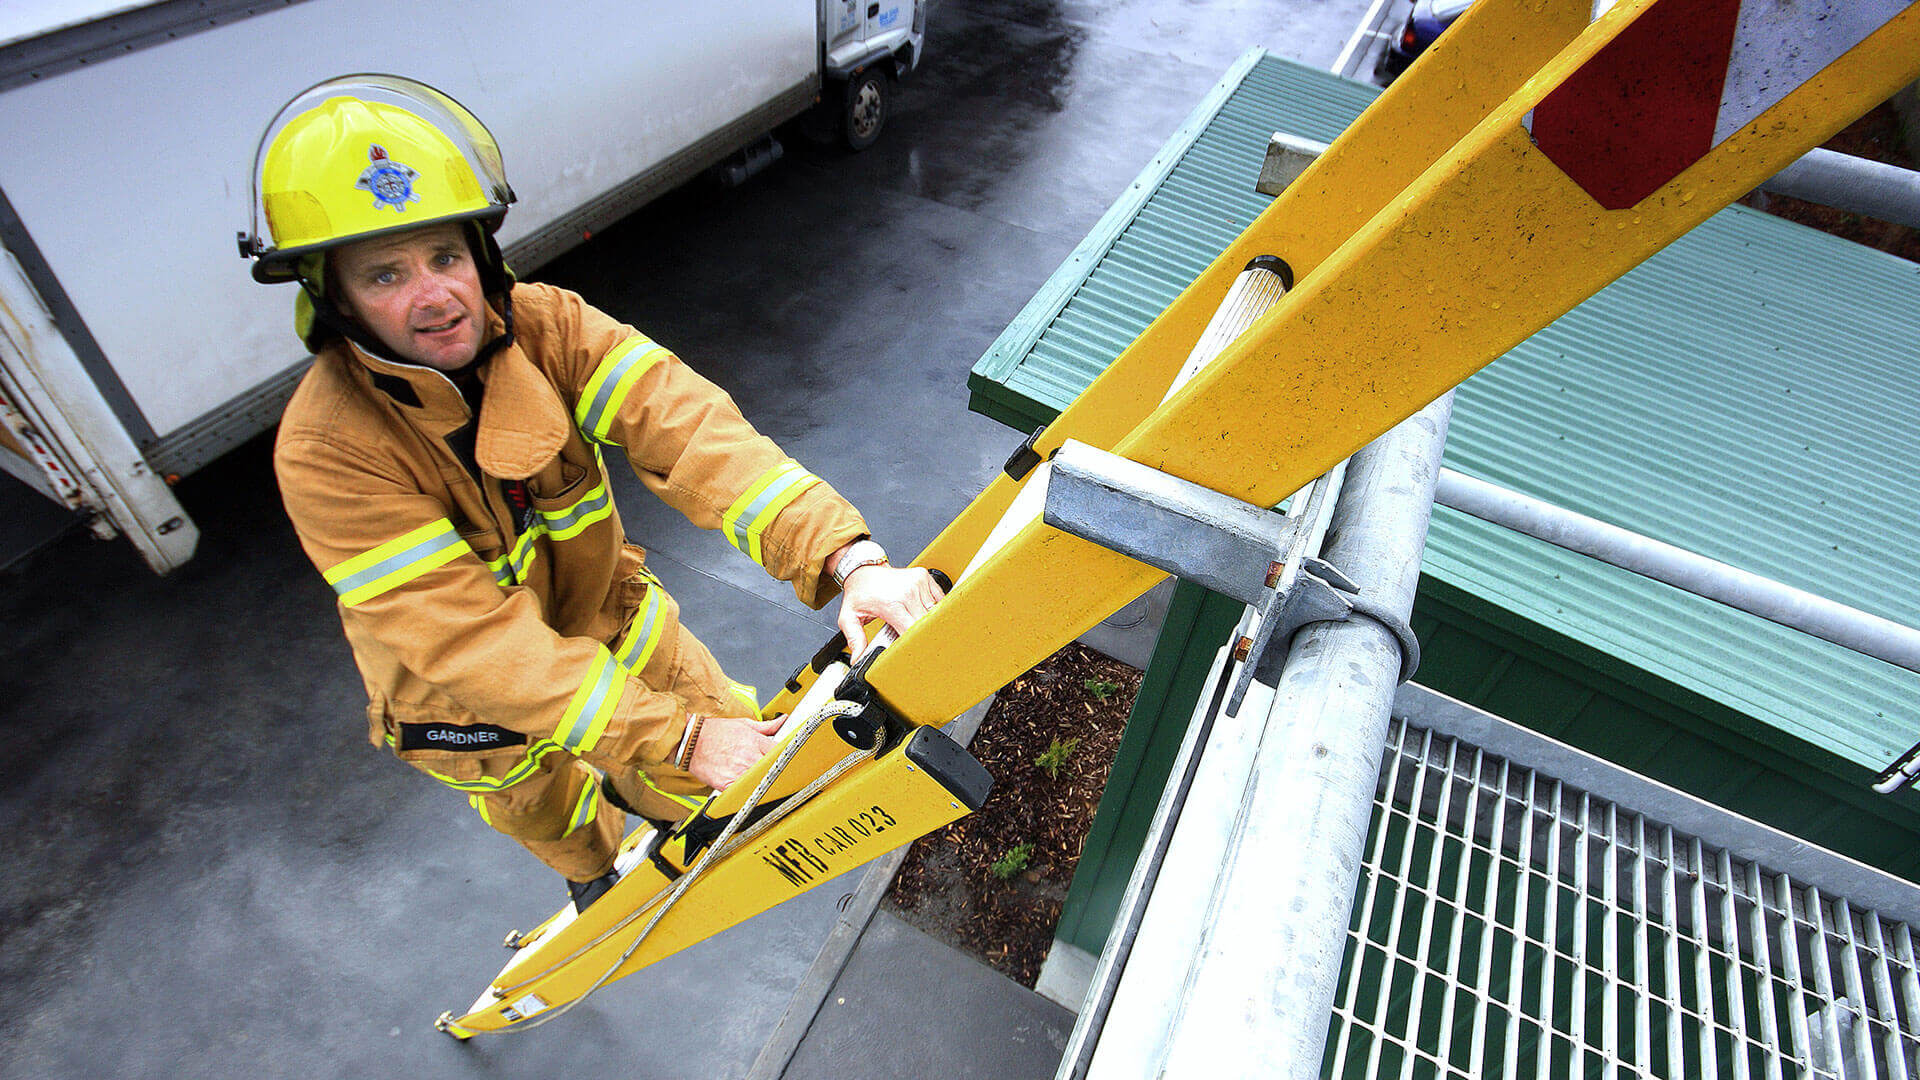 A fireman climbing up a Branach fibreglass PowerMaster Extension ladder.